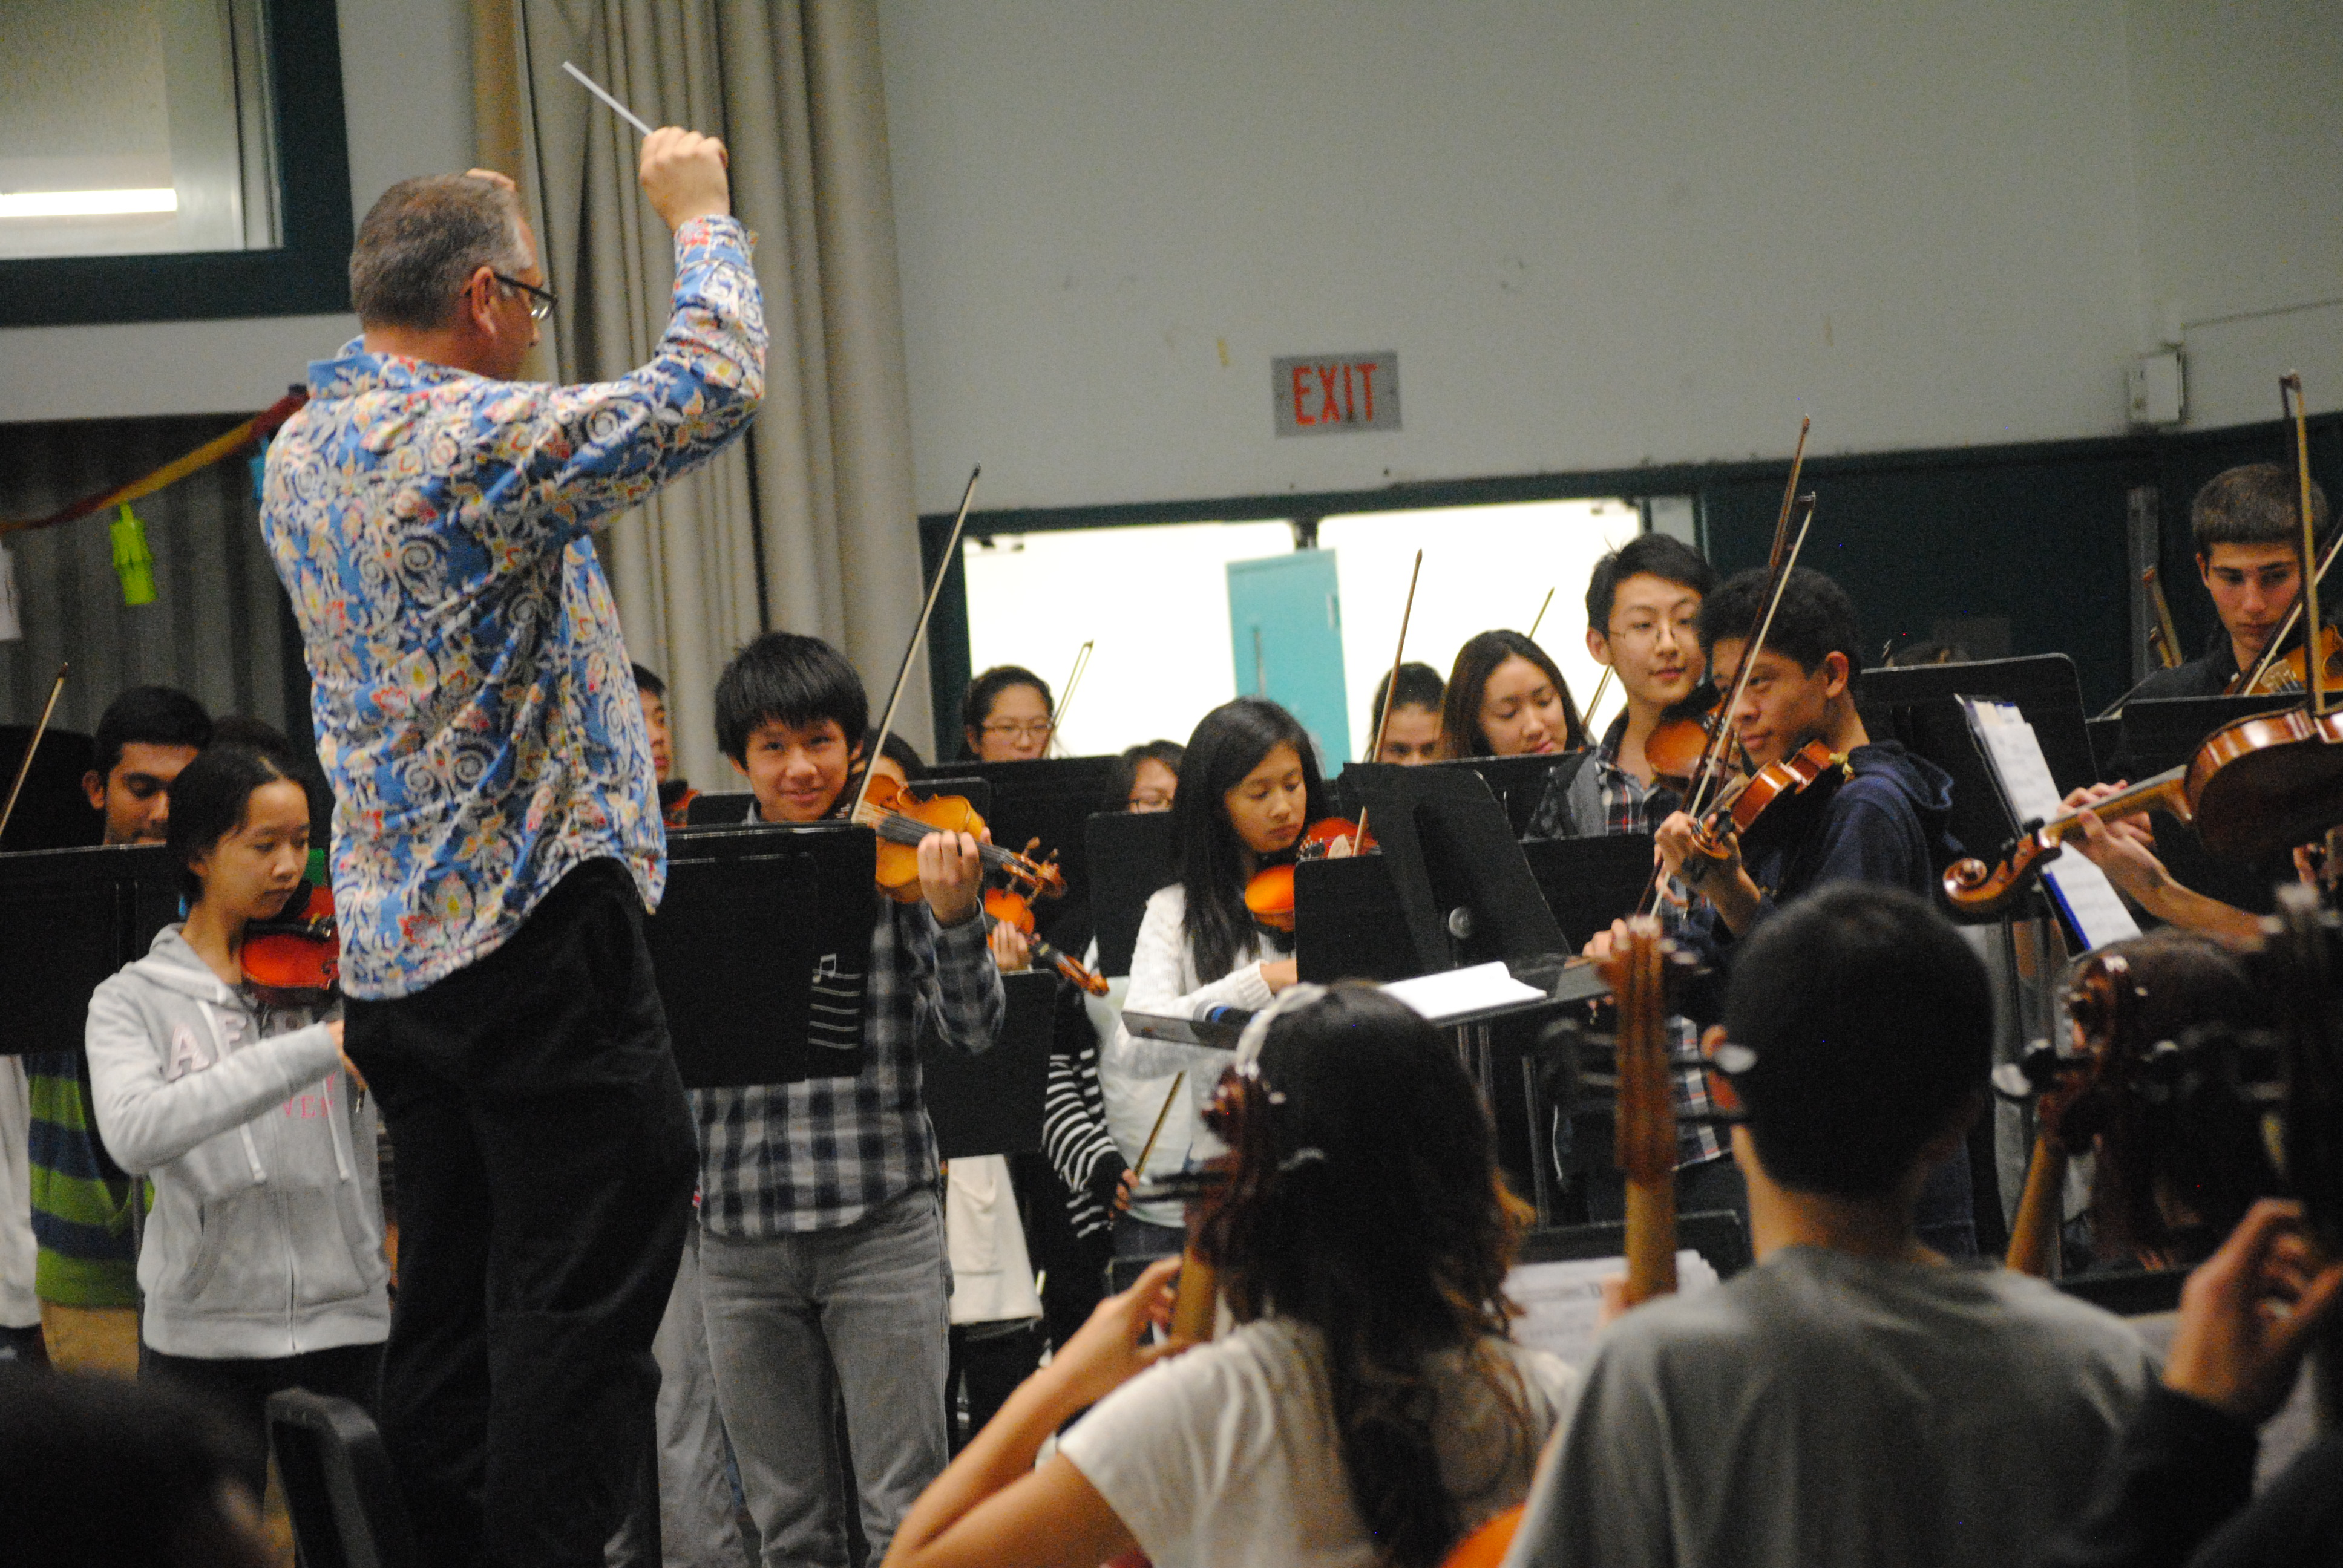 Members of Symphony Orchestra perform on Nov. 14. Photo by Jessica Mi.